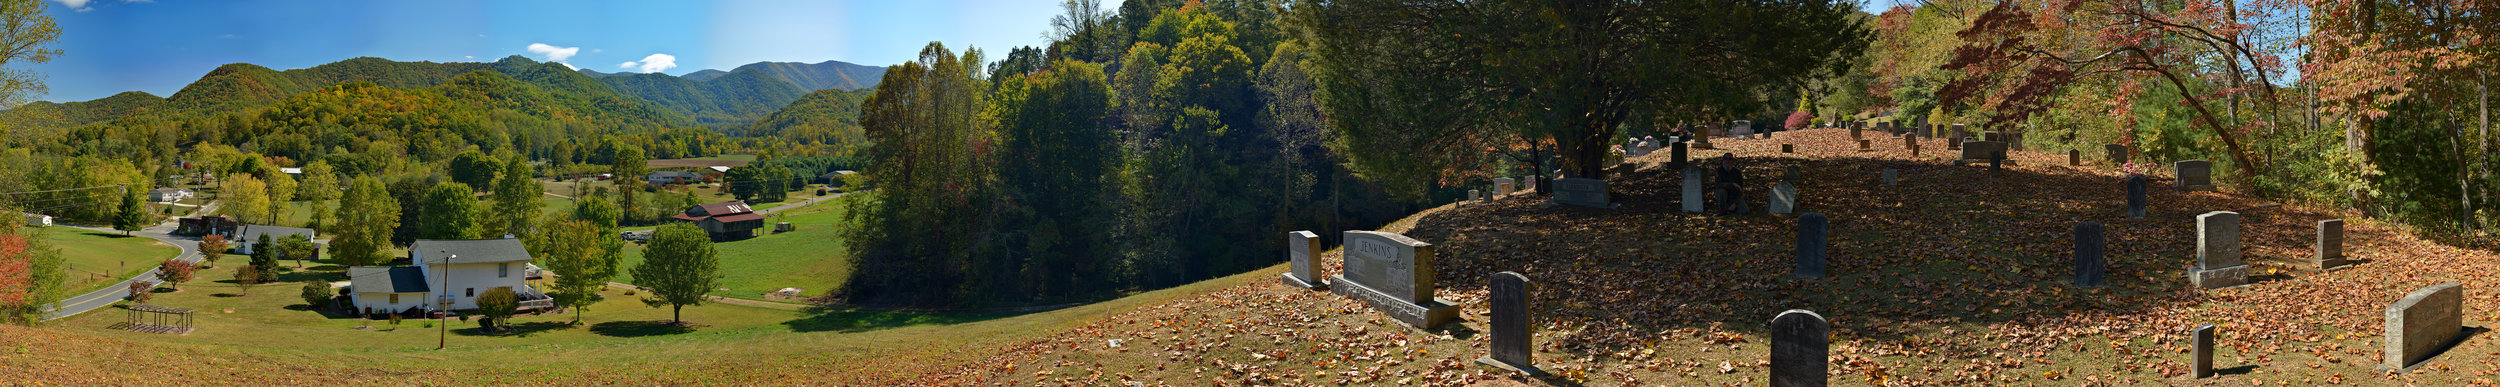 Stecoah NC - A view to die for